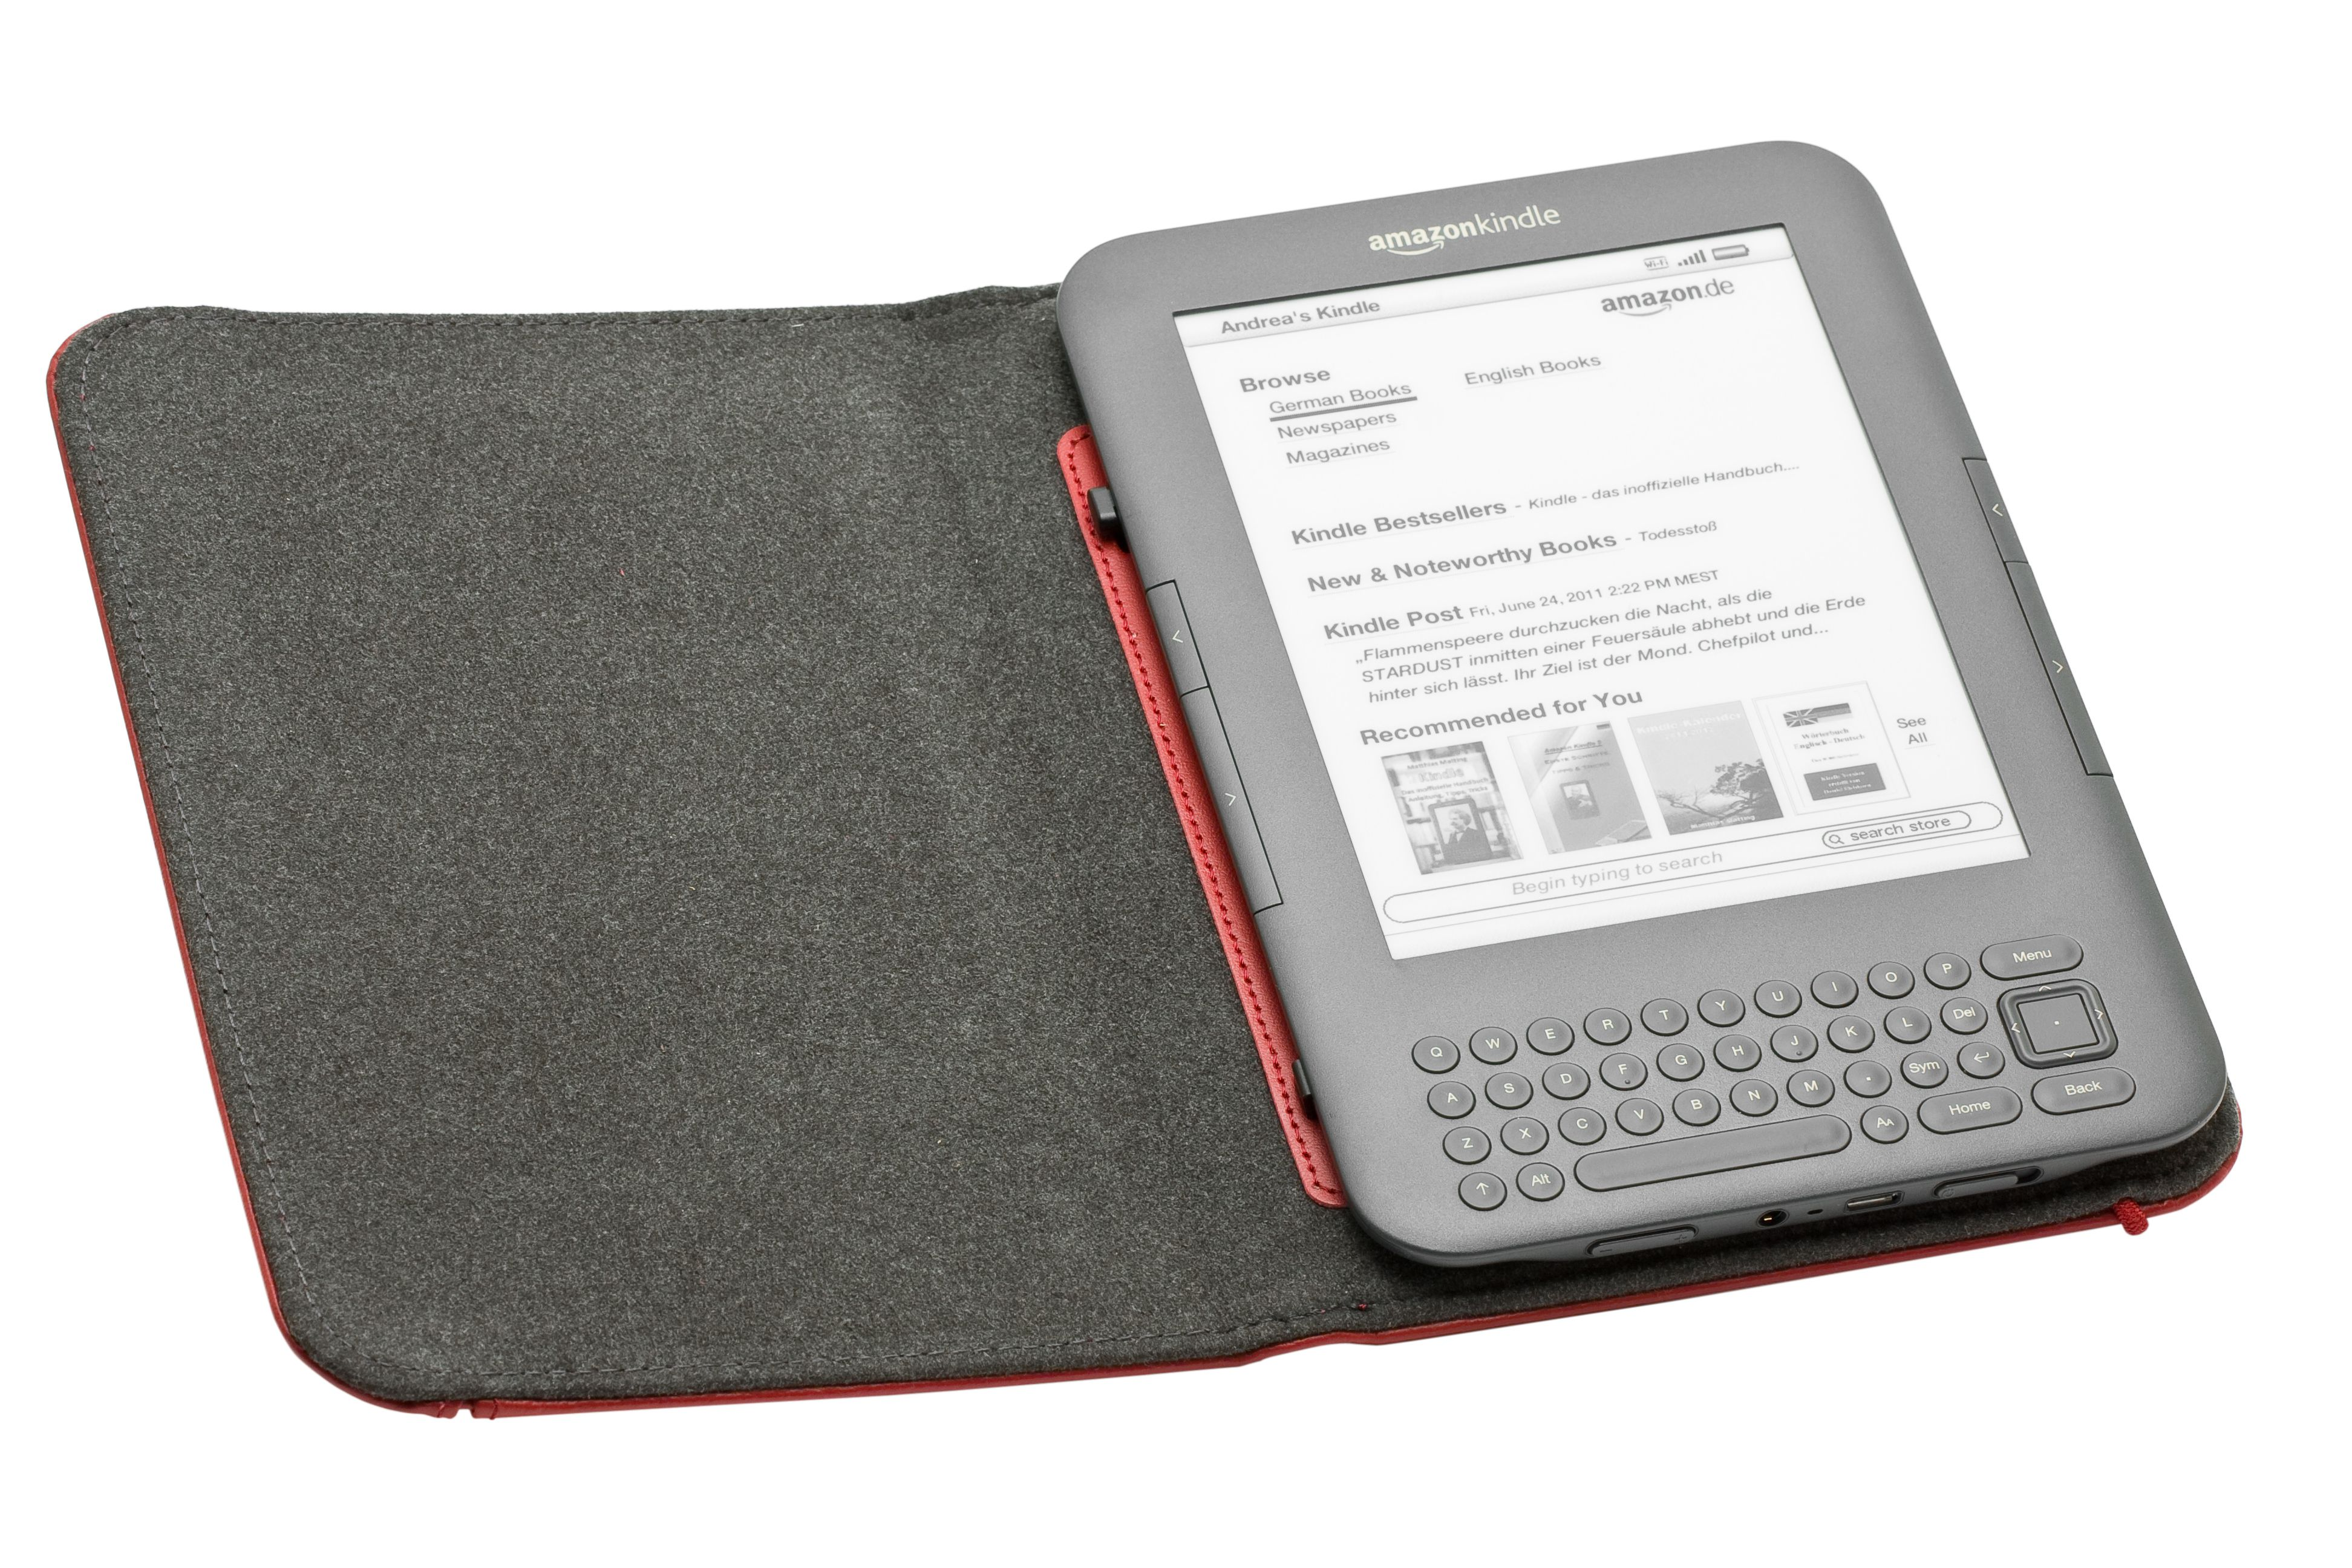 How To Remove The Cover On The Kindle 3